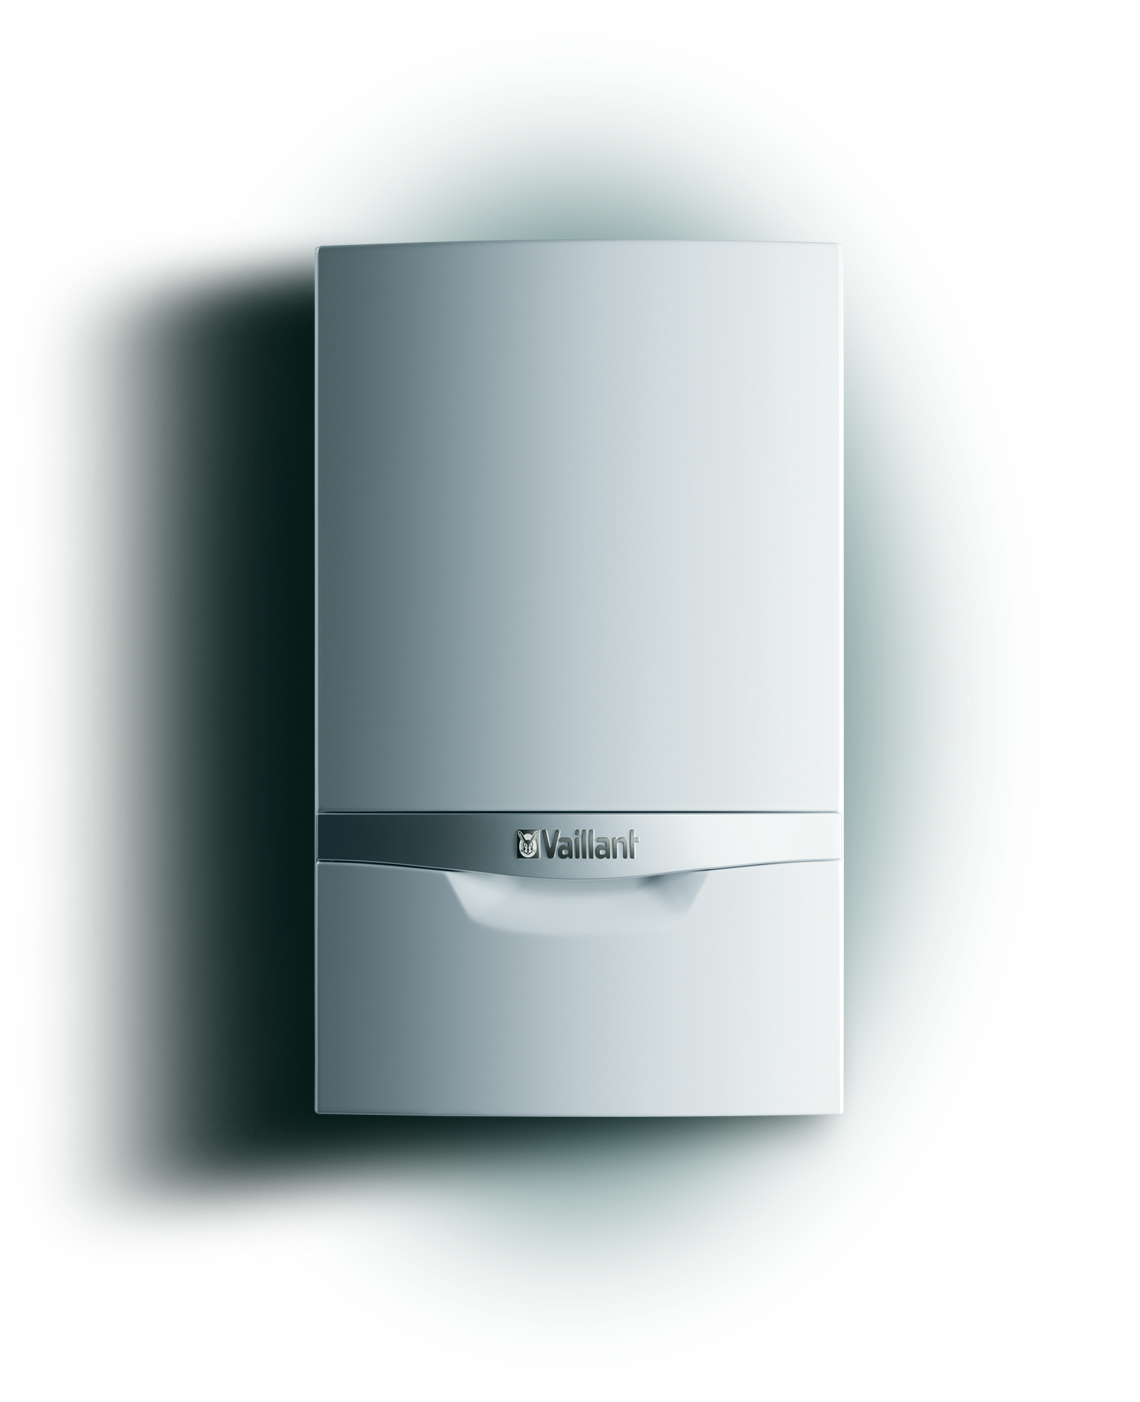 Boiler & Heating Installation - Request Free Installation Quote